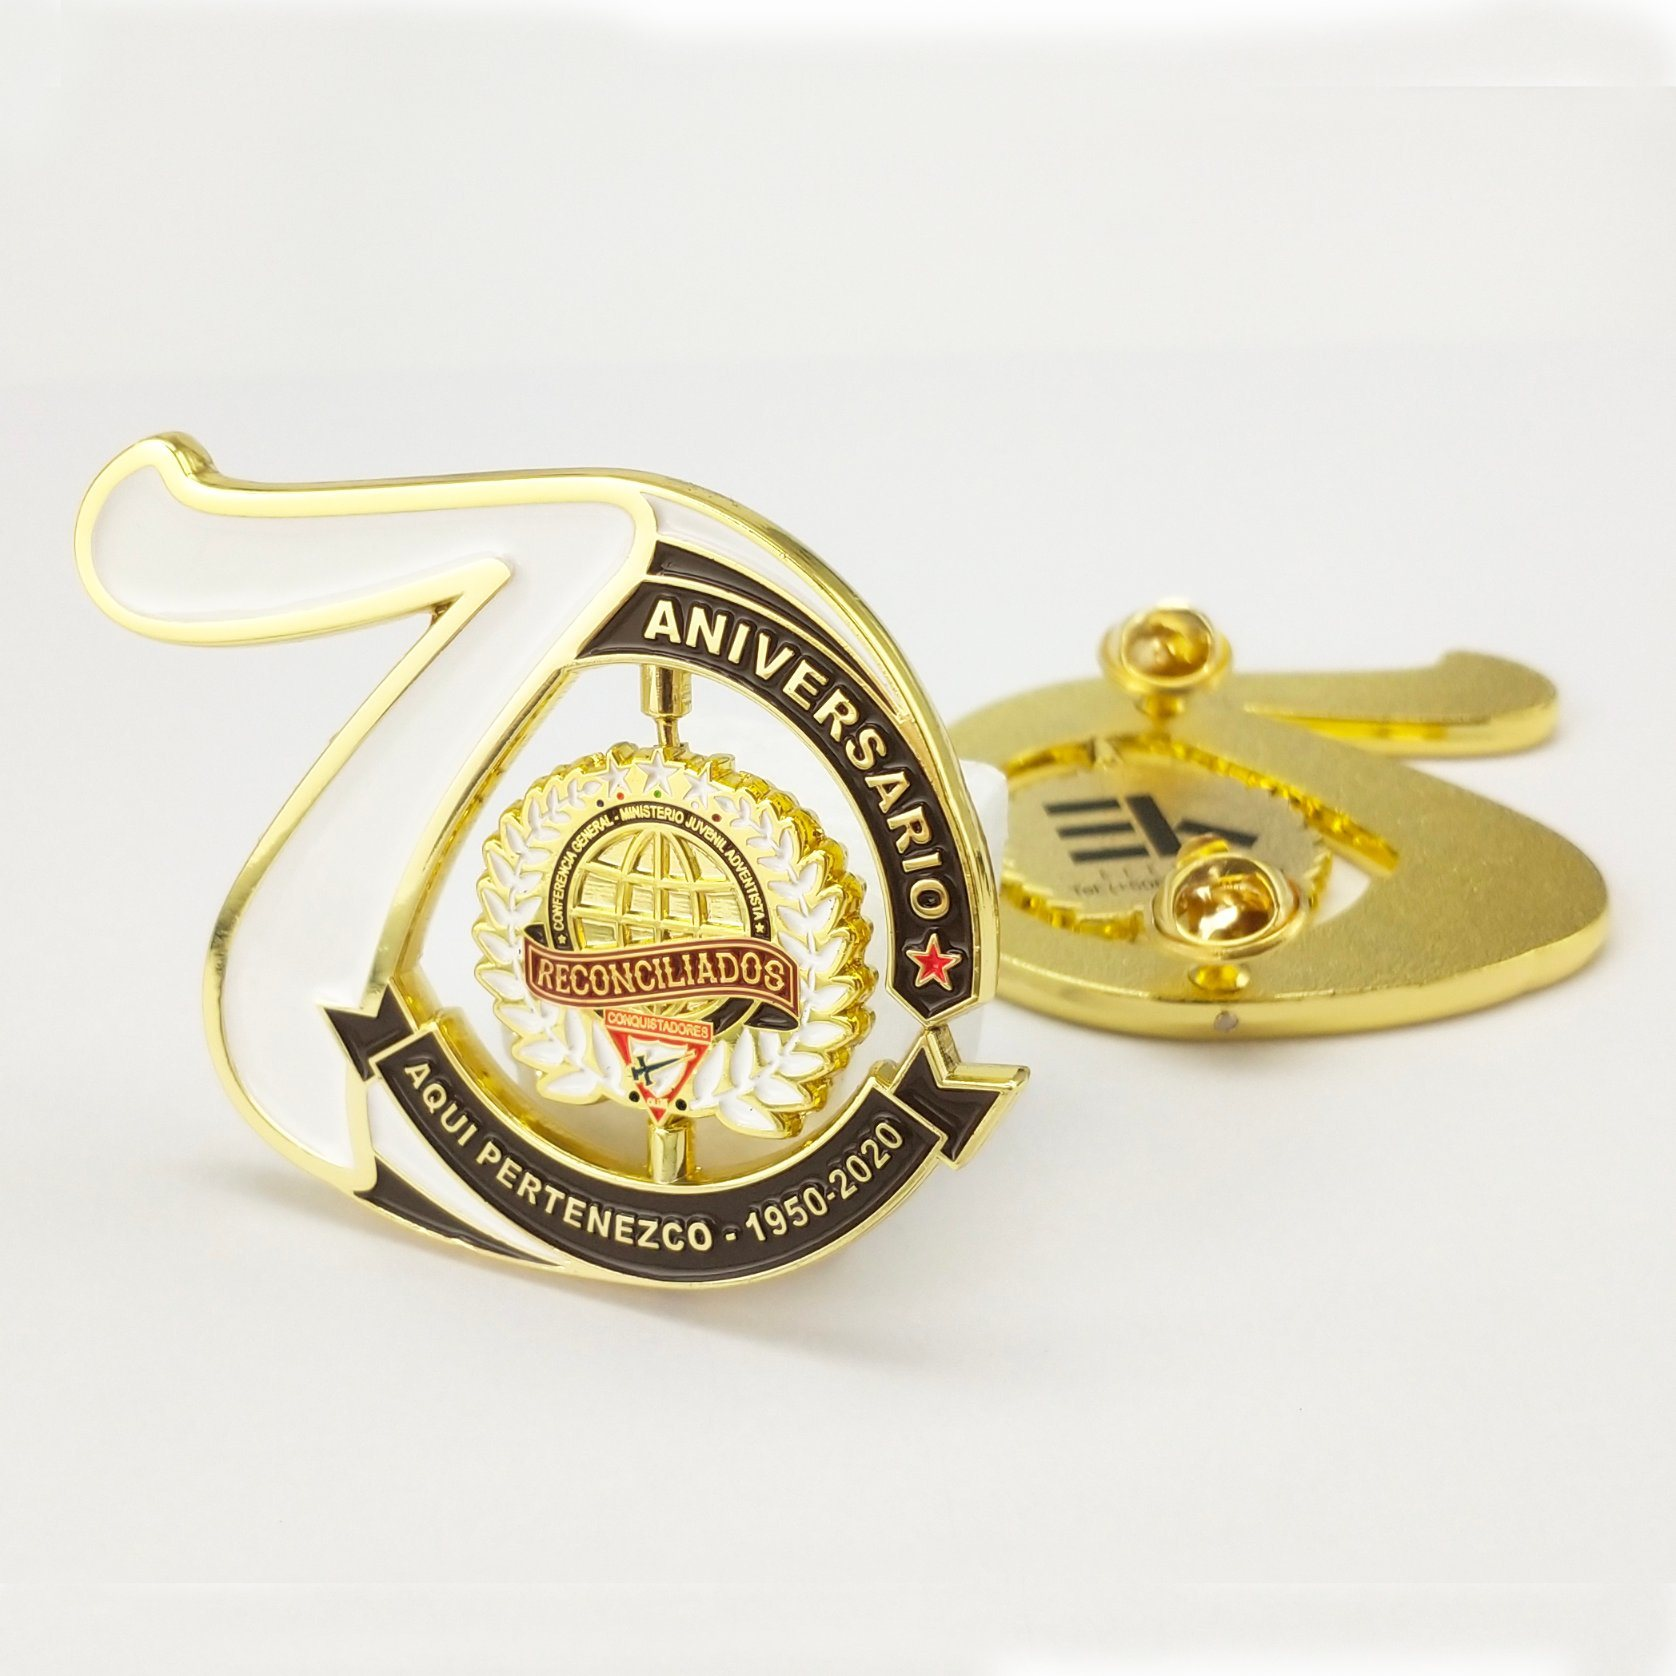 Factory Custom Metal Art Craft Zinc Alloy Lapel Pin 70 Anniversary Celebration Souvenir Gift Emblem Plated Gold Rotate School Police Badges For Promotion Gift China Police Badge And School Badge Price